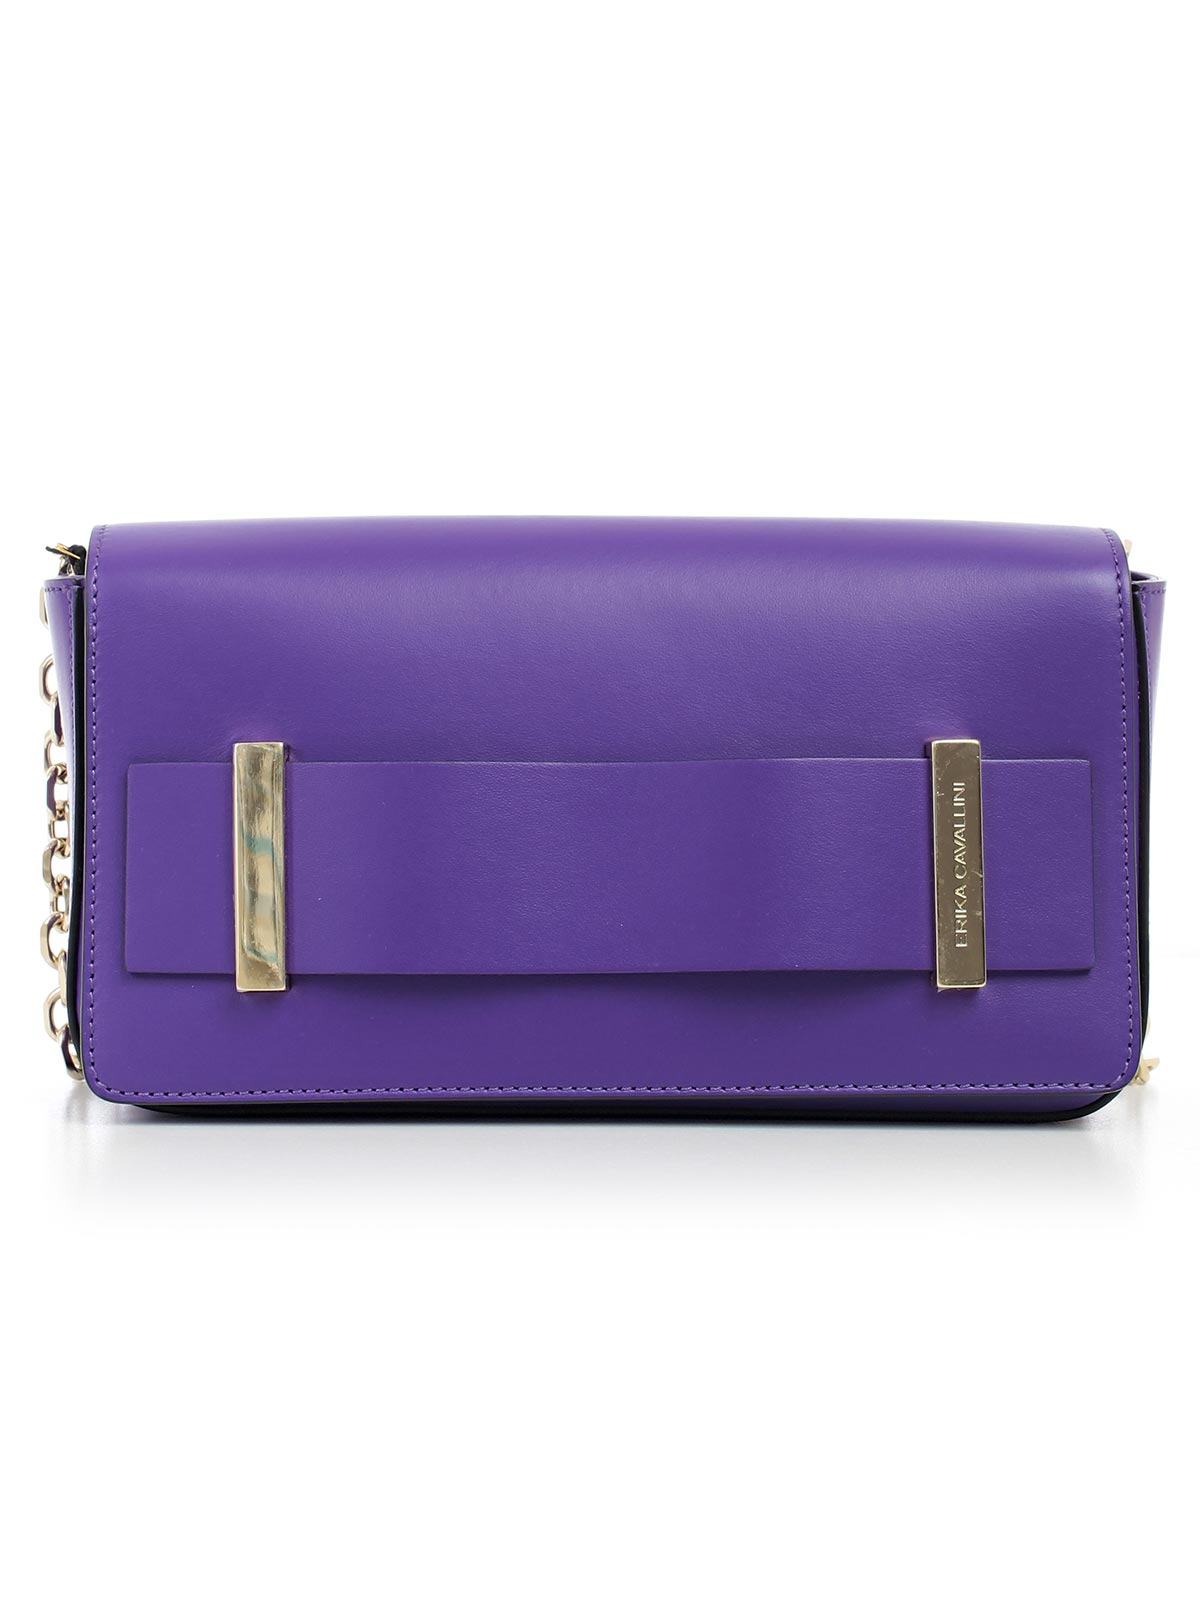 Picture of Erika Cavallini Wallets & Purses